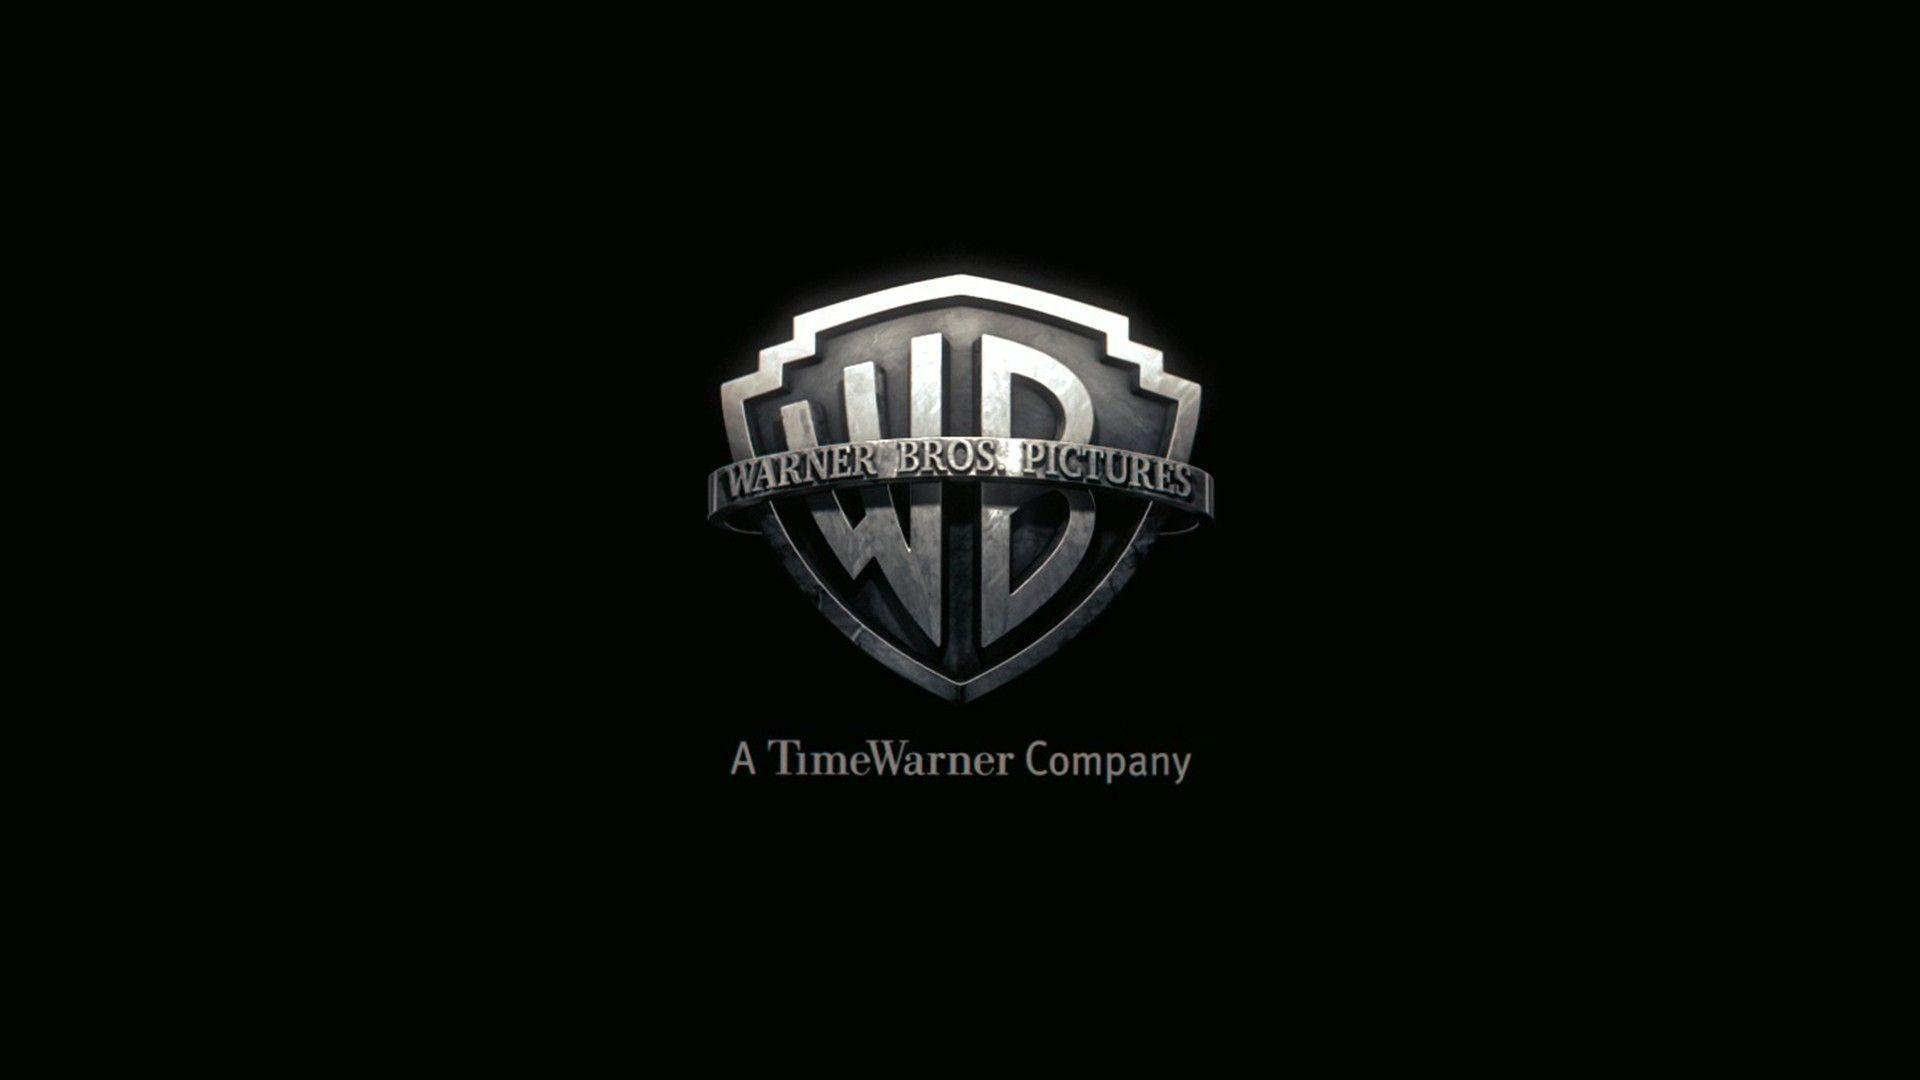 Warner Bros Logo #Wallpaper - HD Wallpapers